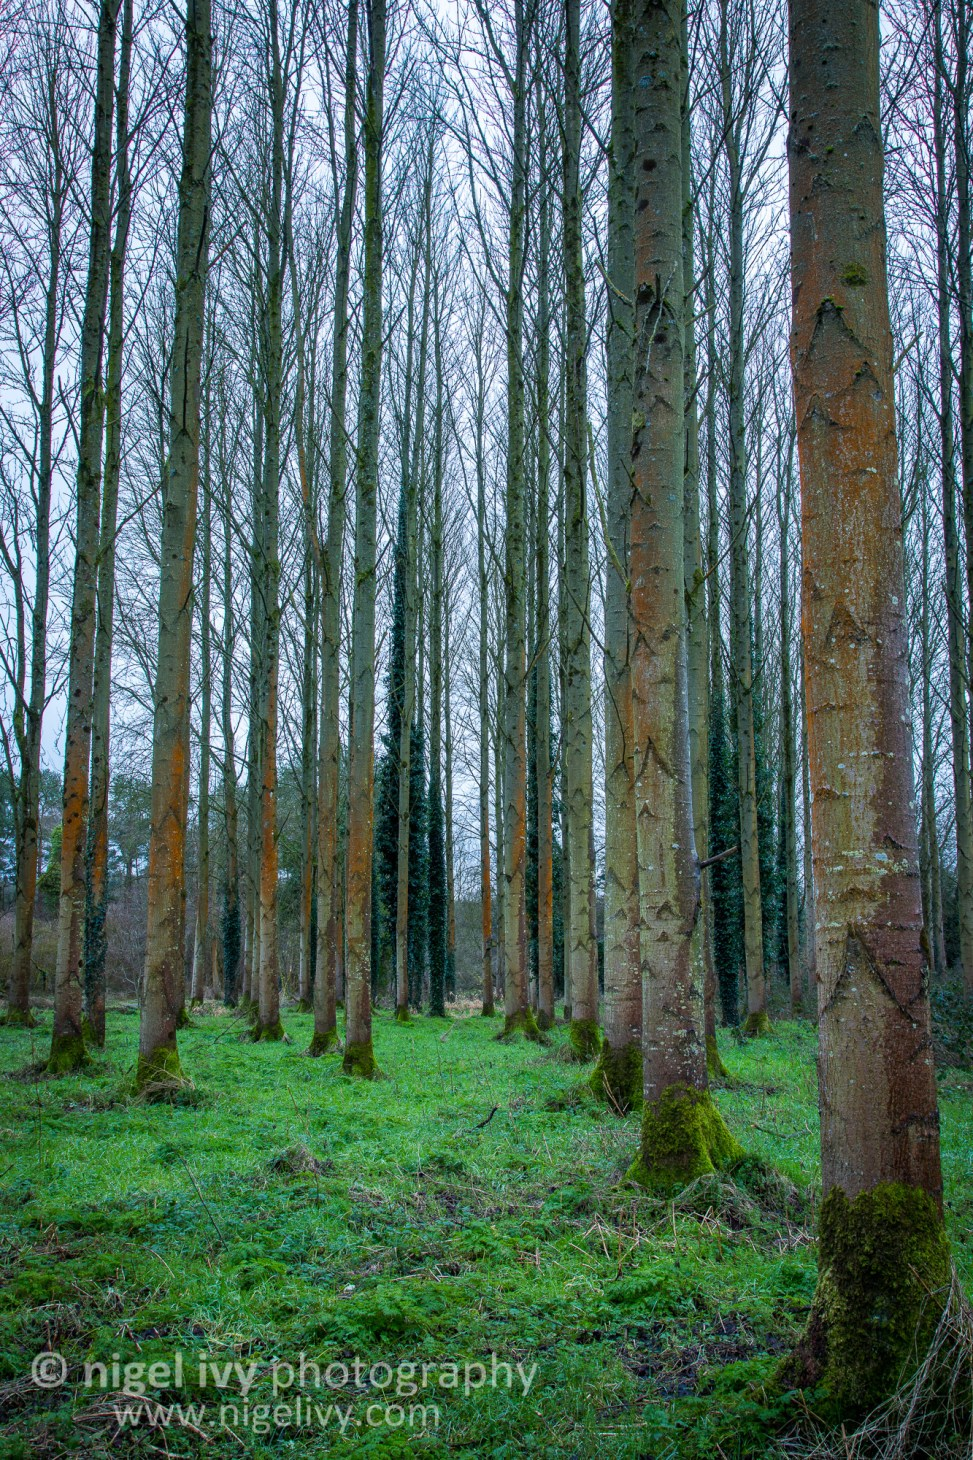 I went out to Lagan Meadows for sunset tonight, but it was raining so I headed into the forest and found this scene.